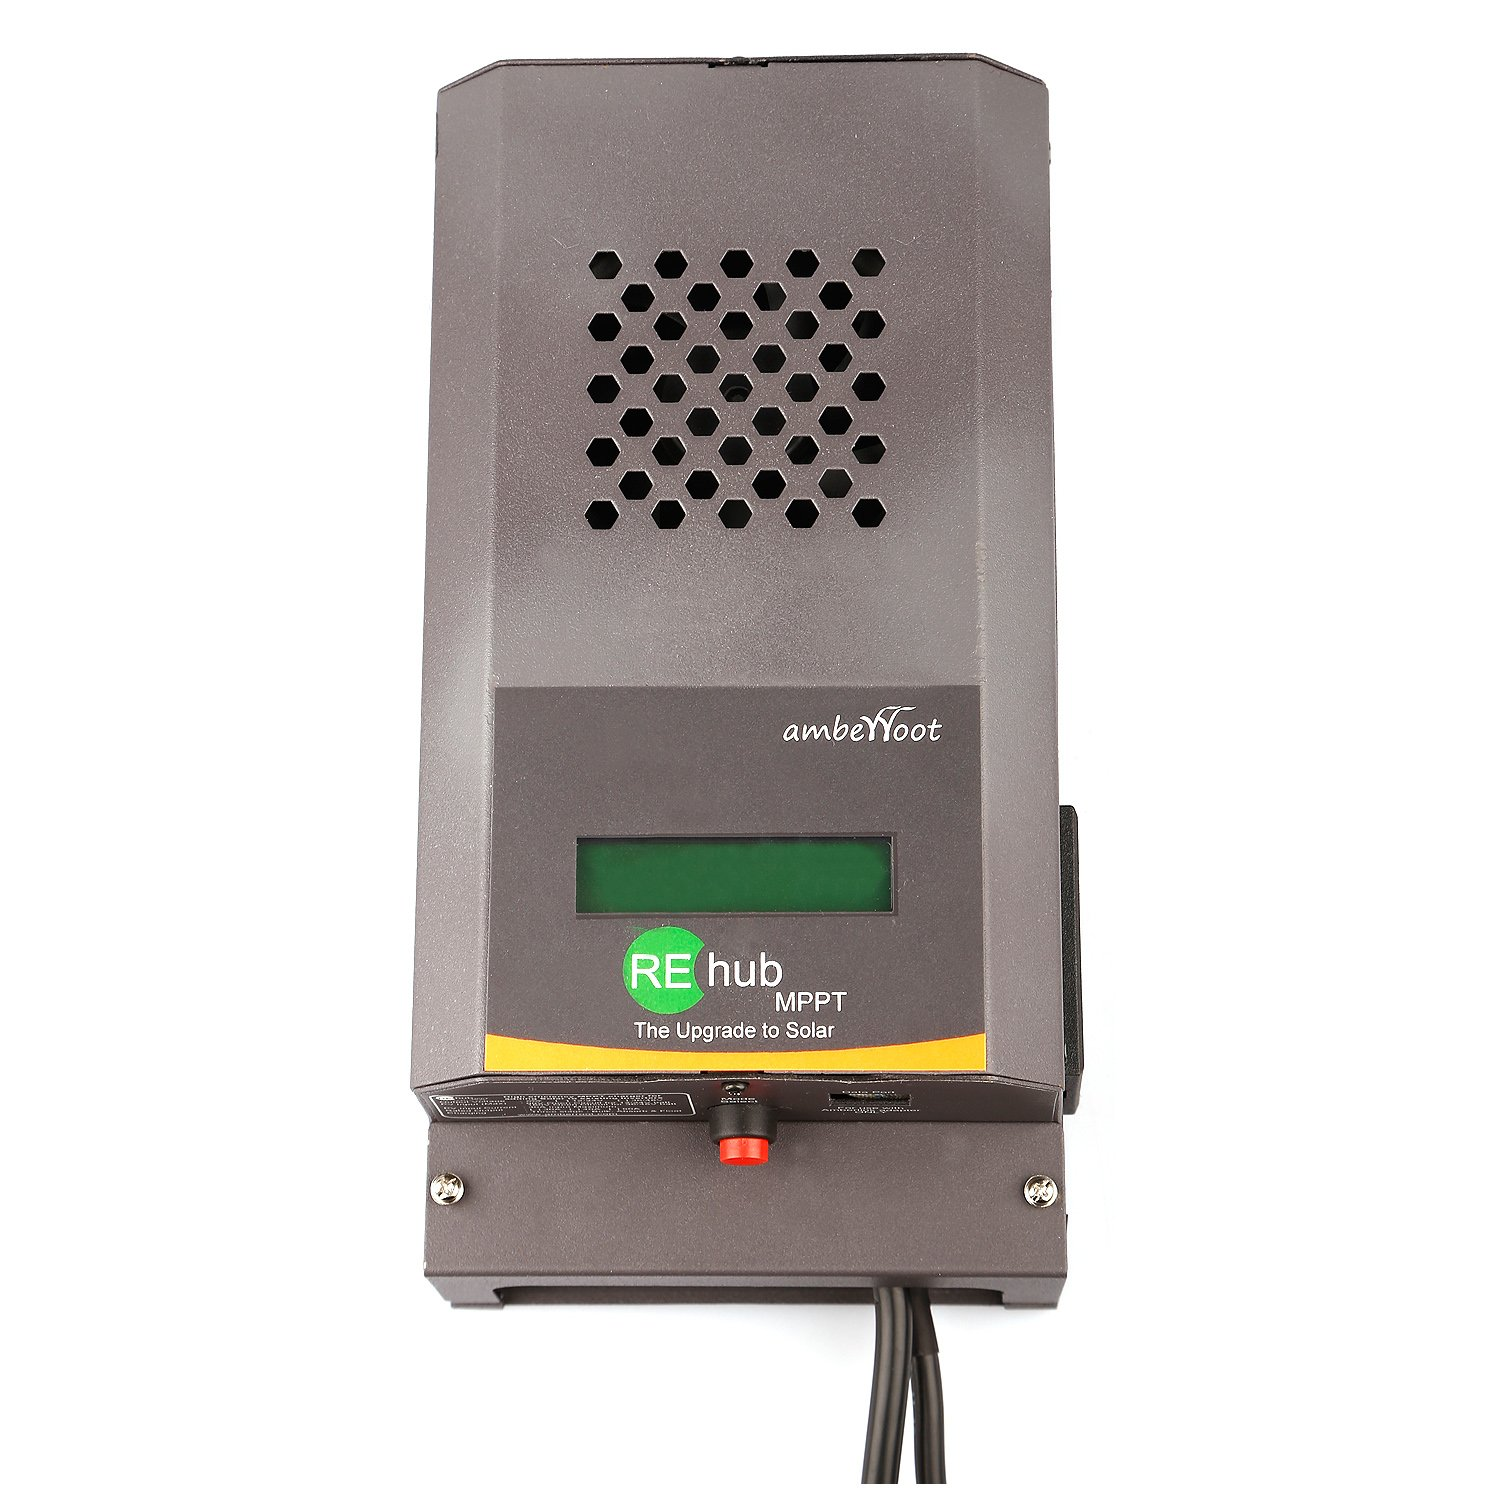 Amberroot Systems Rehub Mppt 12 24v 40a That Add Solar To Existing Series Wiring Pv Panels Backup Inverter Garden Outdoors